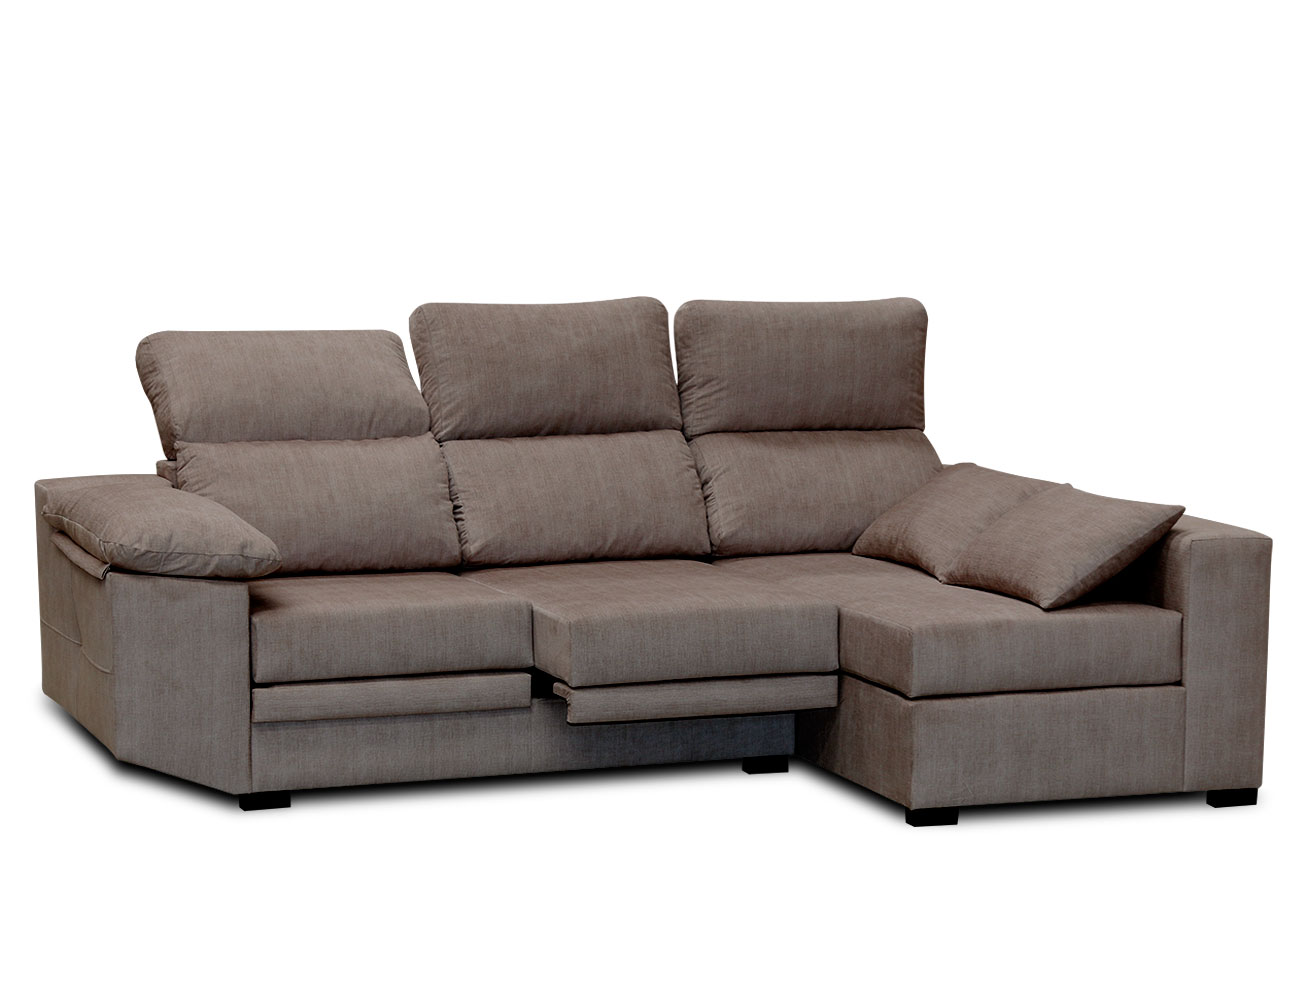 Sofa chaiselongue moderno cojines moka 2